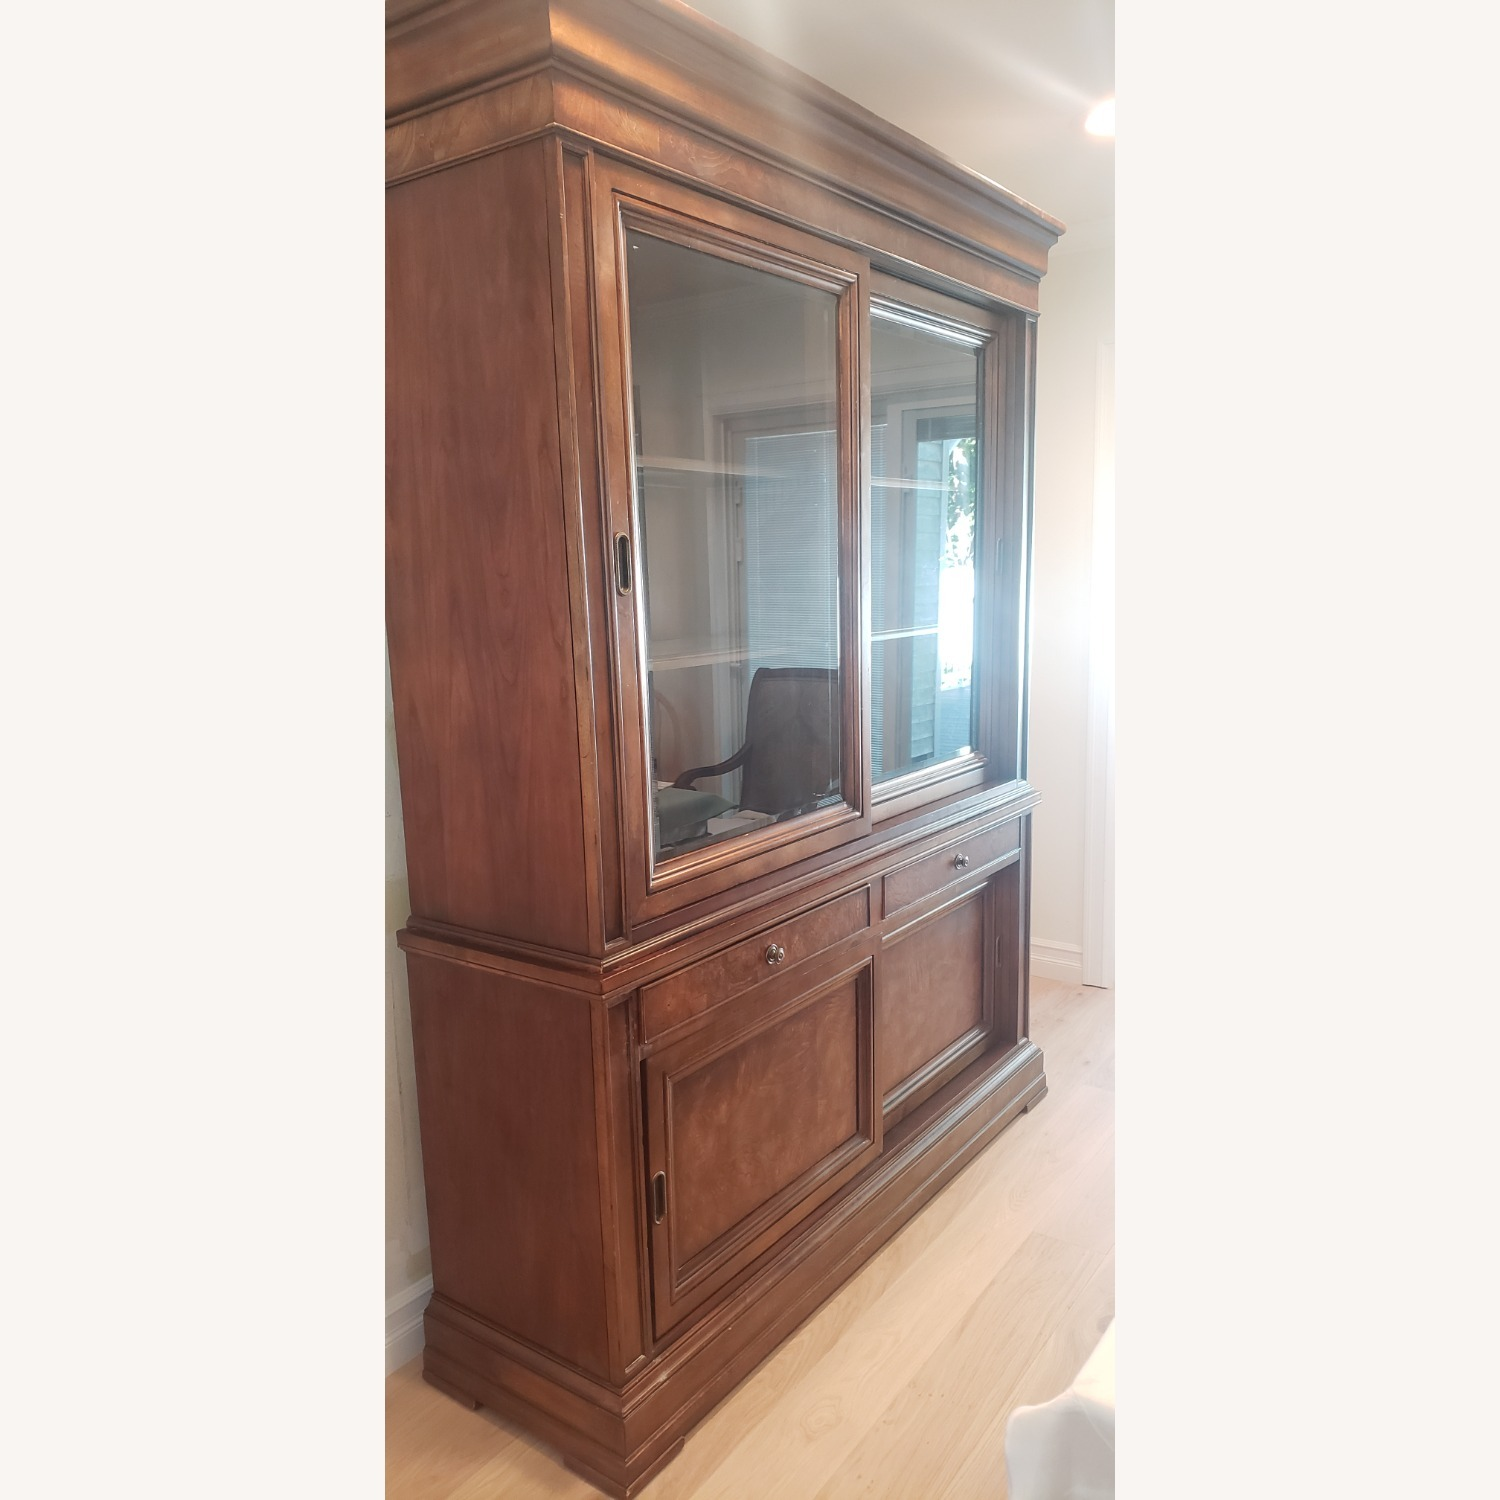 Ethan Allen Townhouse China Cabinet - image-2